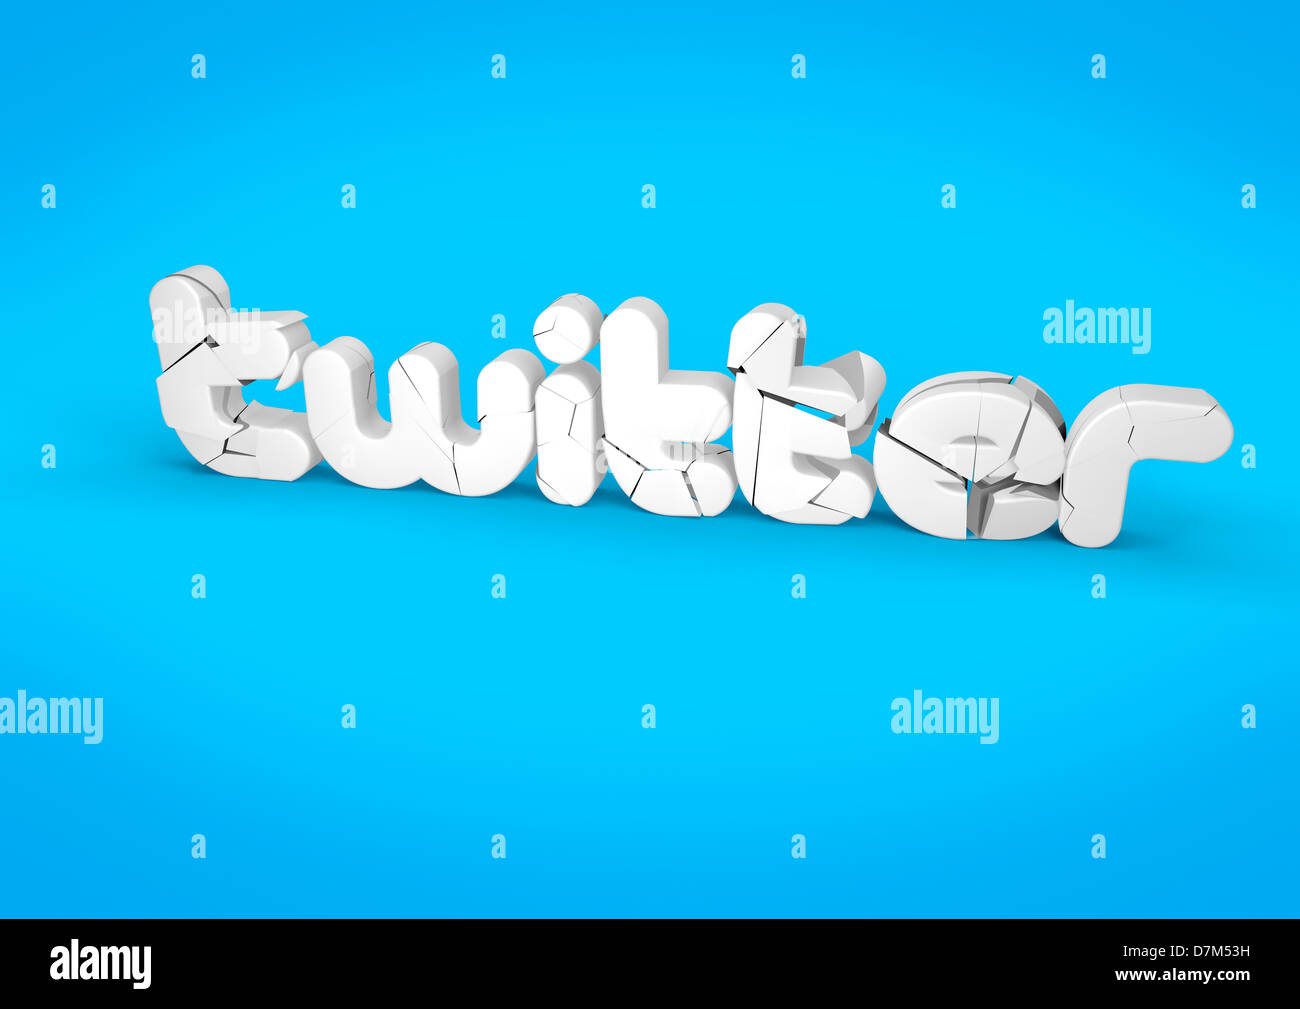 TWITTER cracking and crumbling - social media concept image - Stock Image